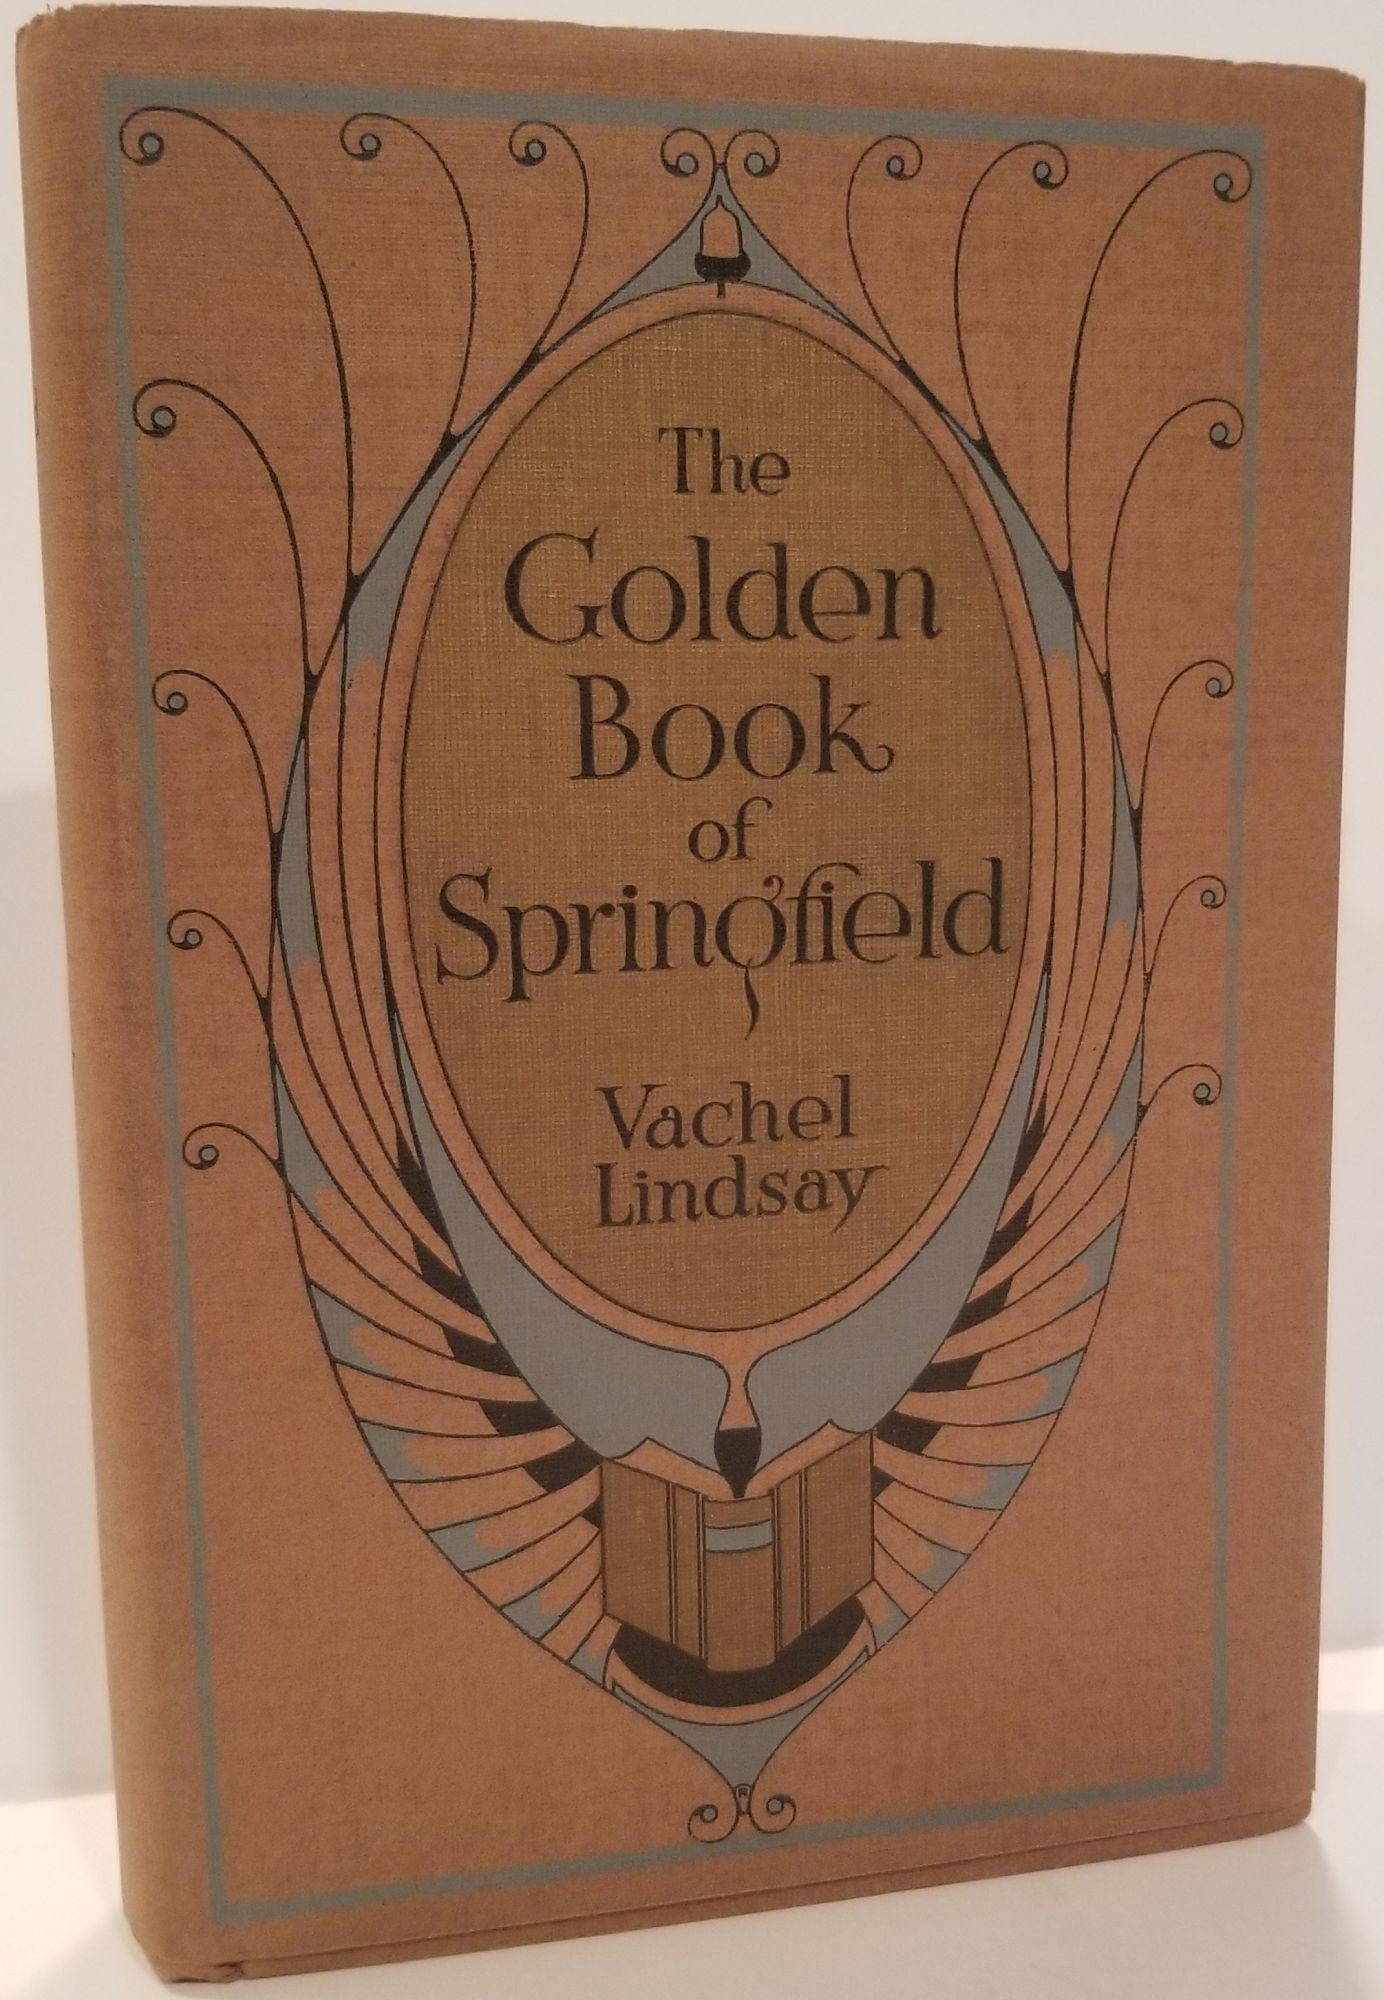 THE GOLDEN BOOK OF SPRINGFIELD. Vachel Lindsay.